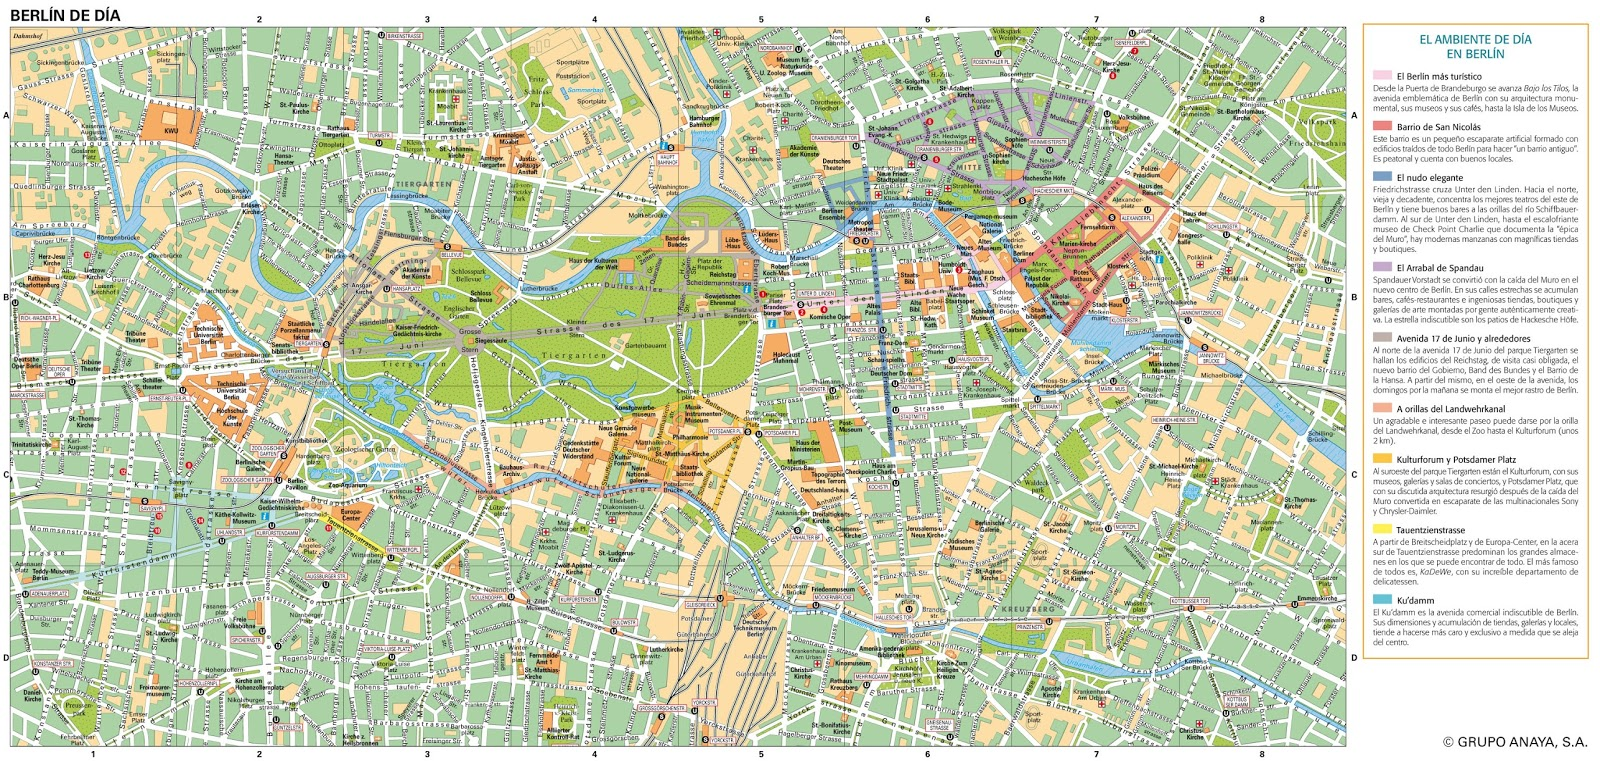 BERLIN - CRACOVIA 2016: PLANO DE BERLIN